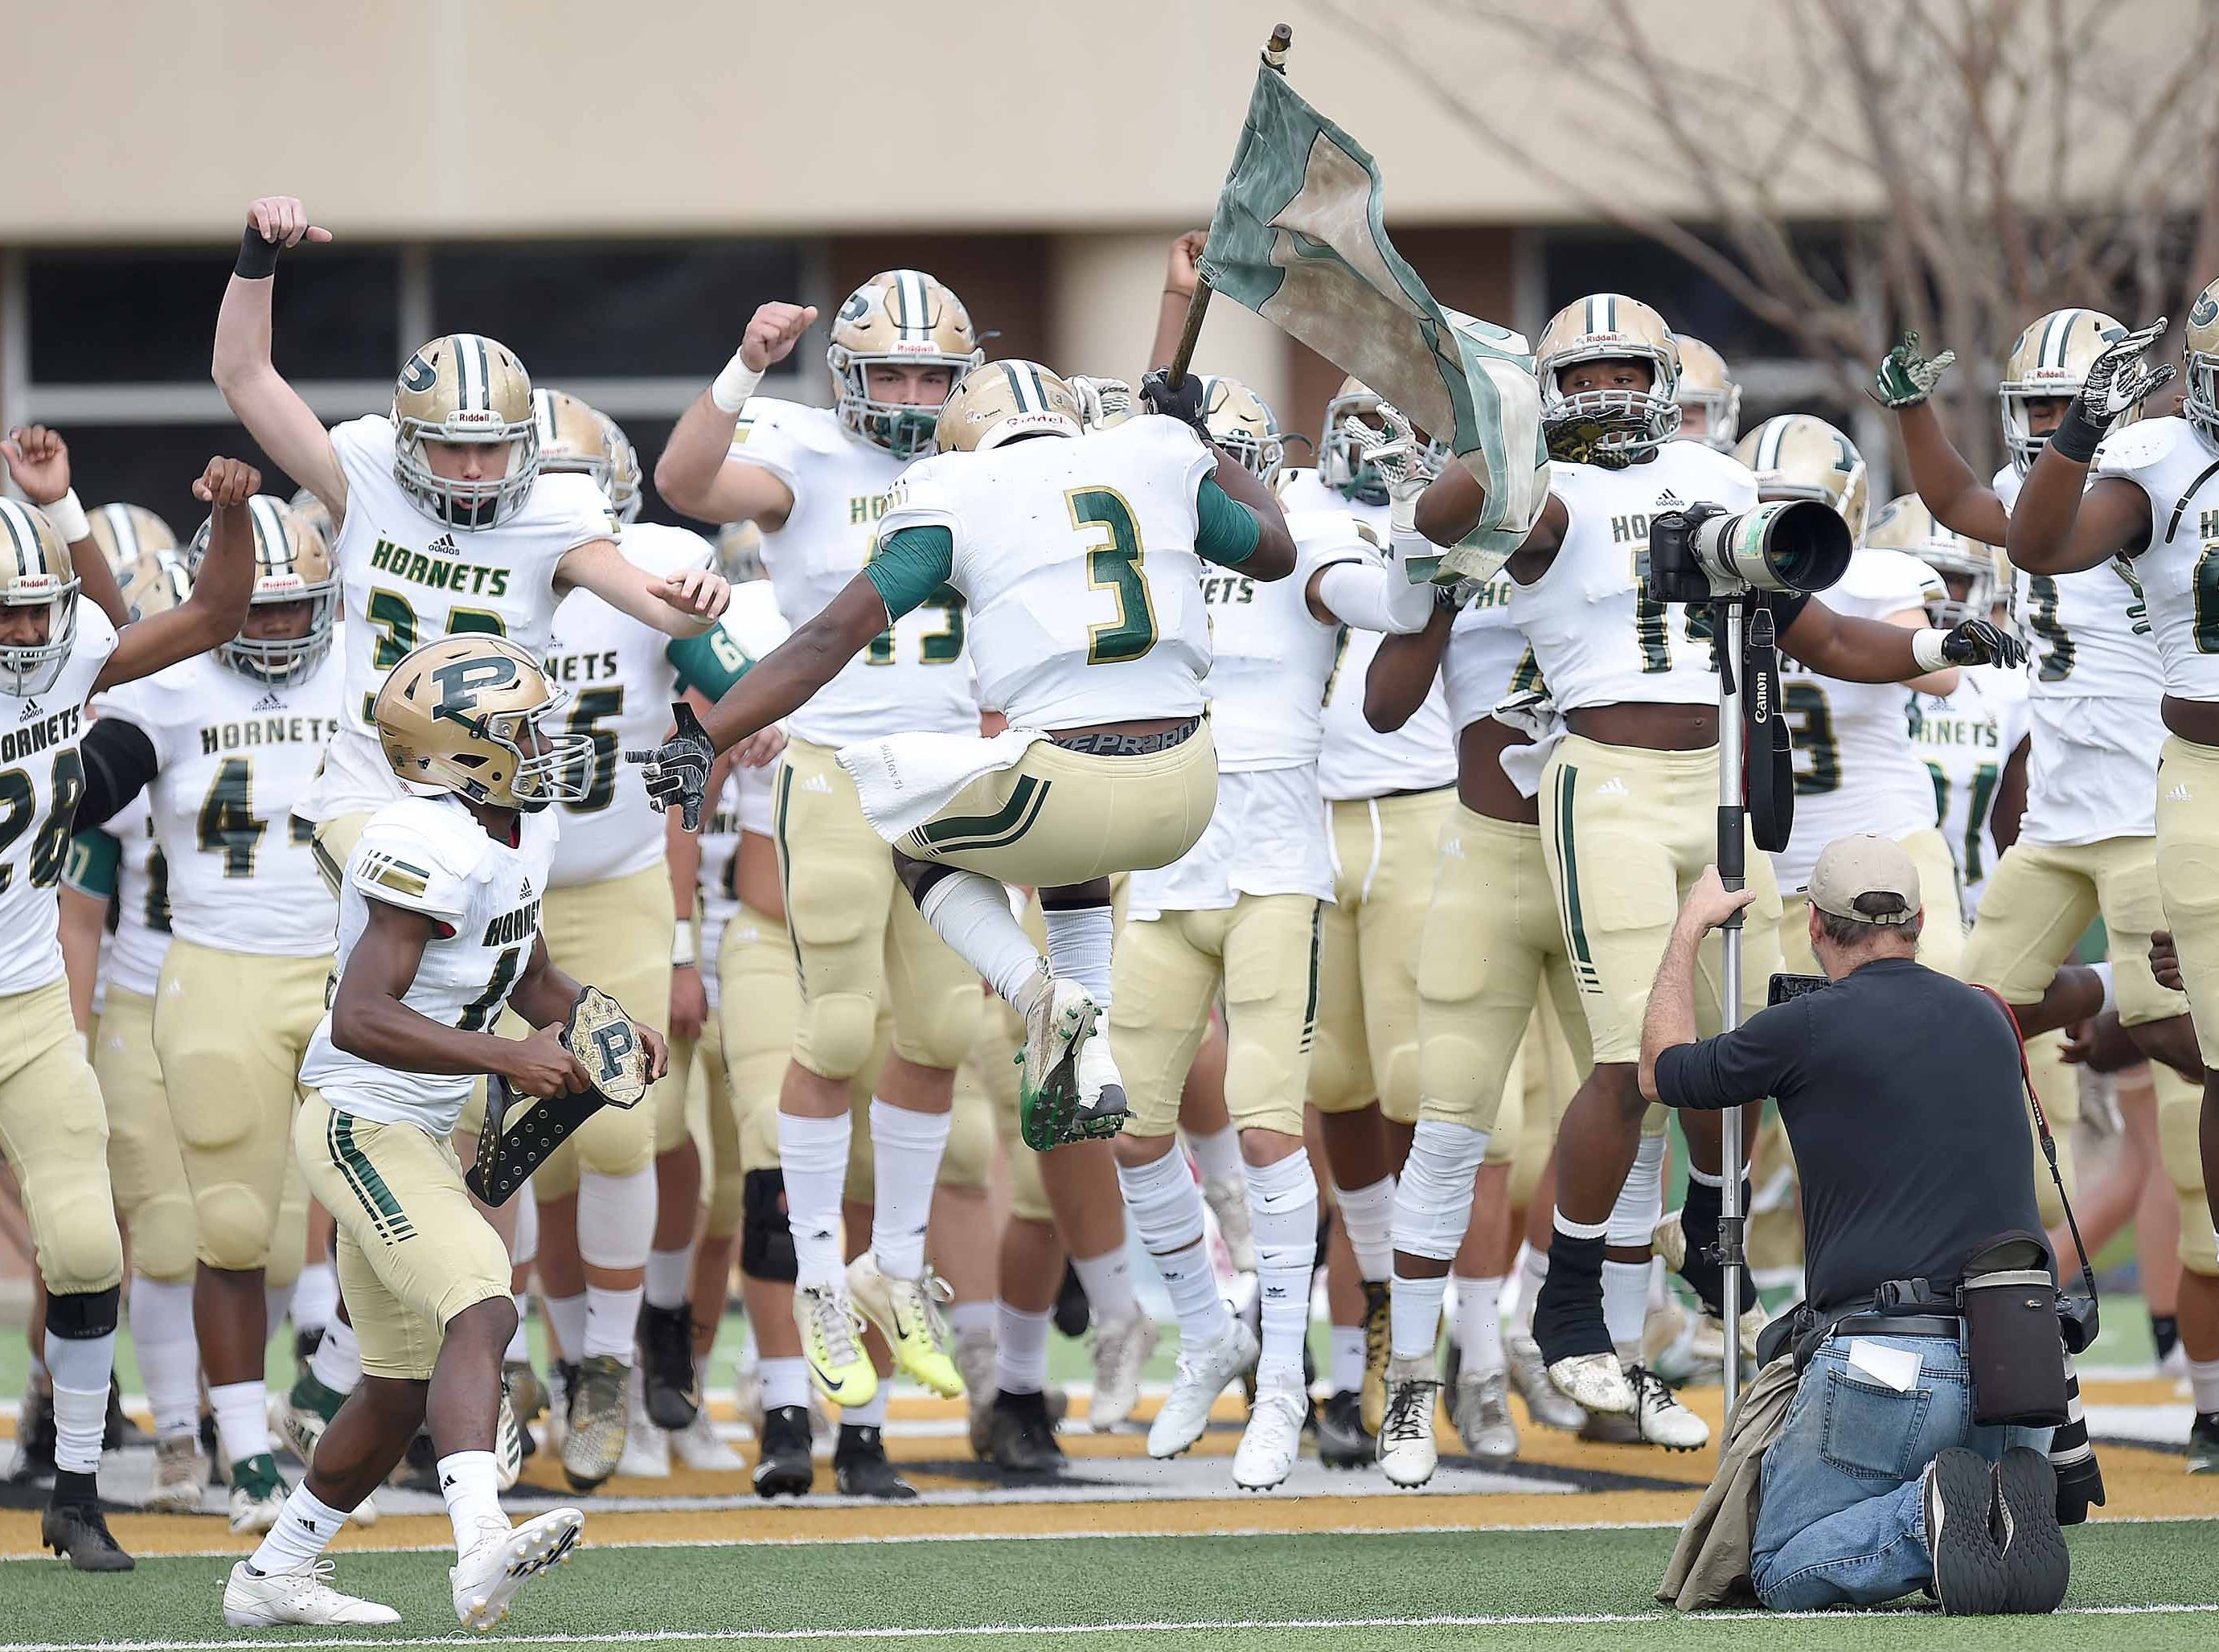 The Poplarville Hornets prepare to take the field on Saturday, December 1, 2018, in the MHSAA BlueCross BlueShield Gridiron Classic High School Football Championships in M.M. Roberts Stadium on the University of Southern Mississippi campus in Hattiesburg, Miss.